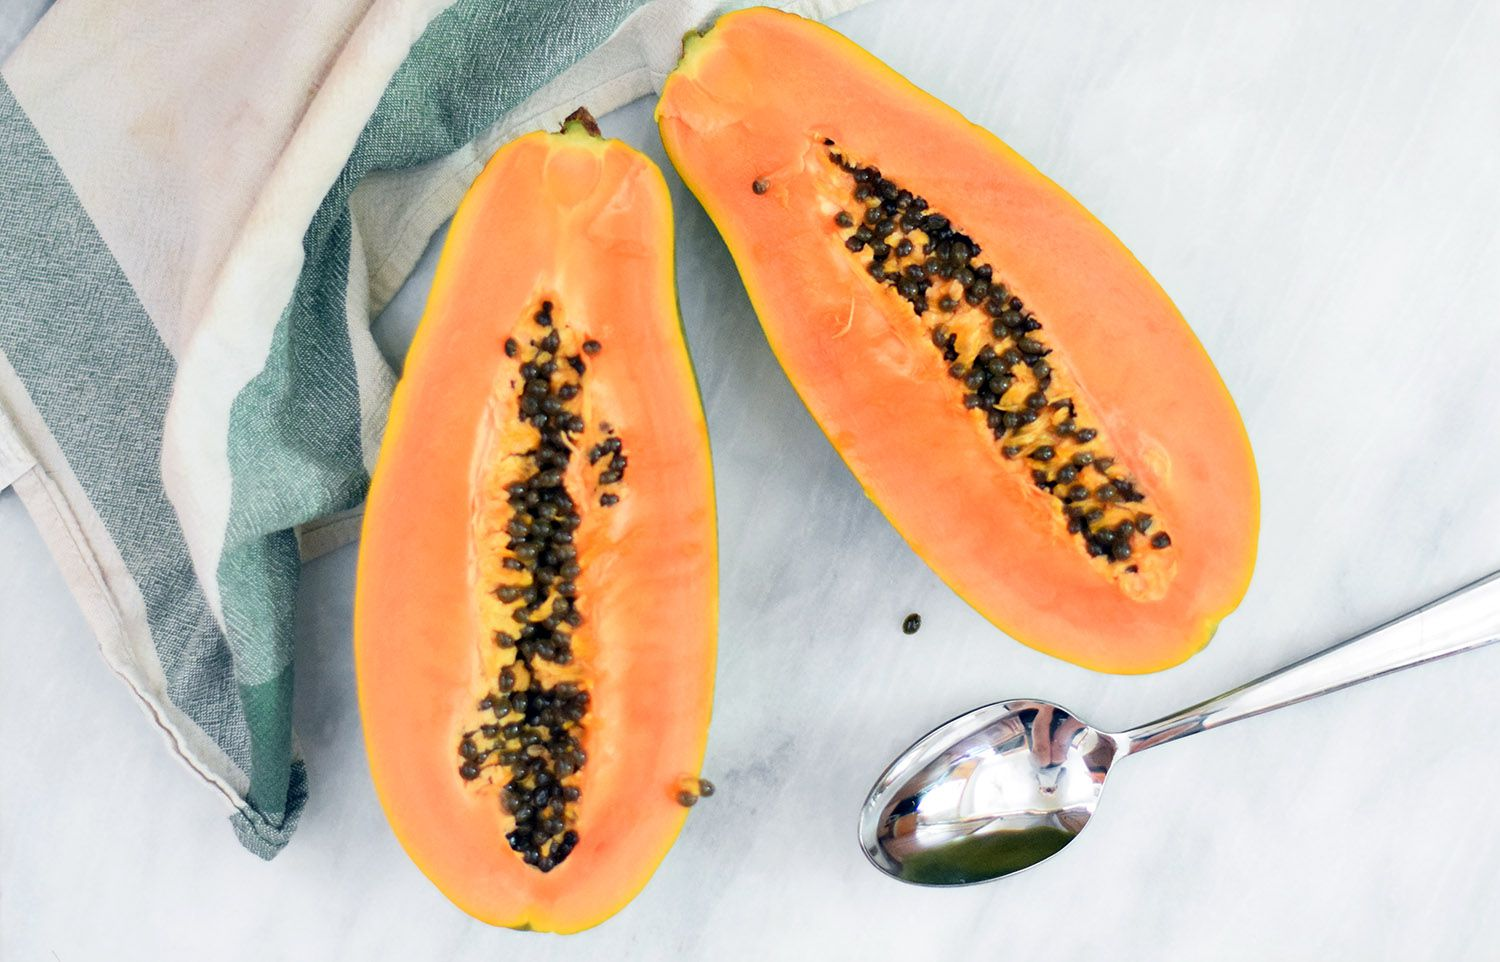 How To Cut And Eat A Papaya